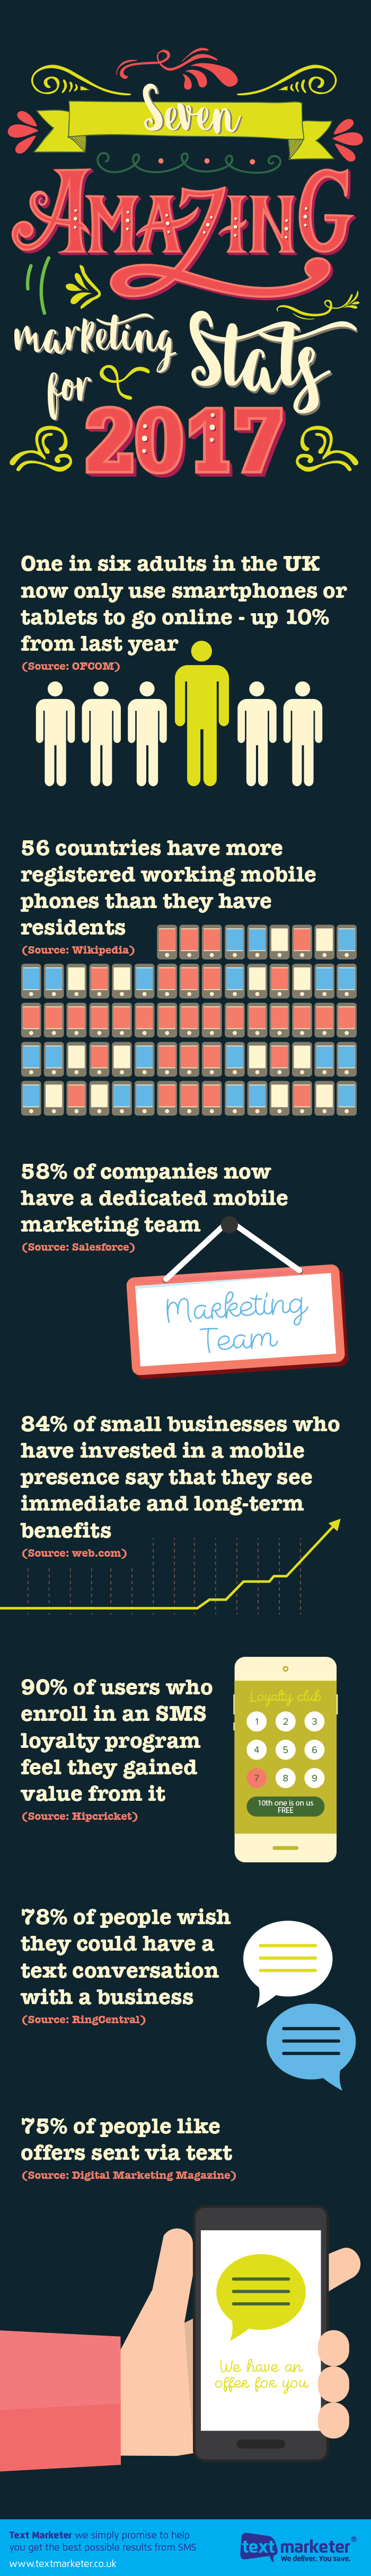 Amazing Marketing Stats for 2017 [Infographic]